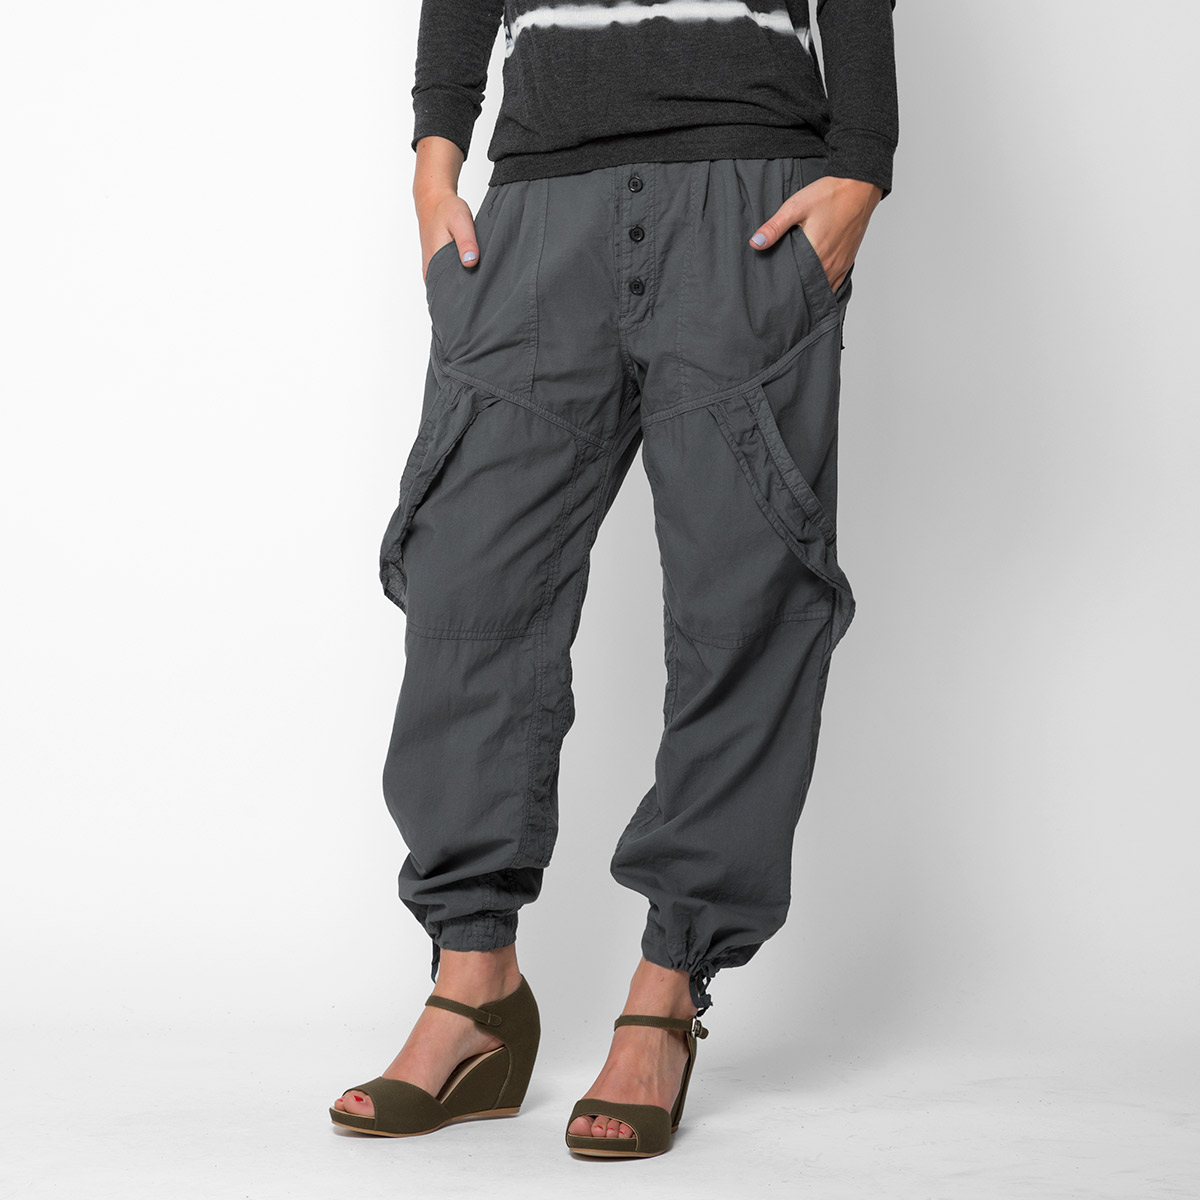 Prairie Underground Painters Pant Womens Apparel At Vickerey